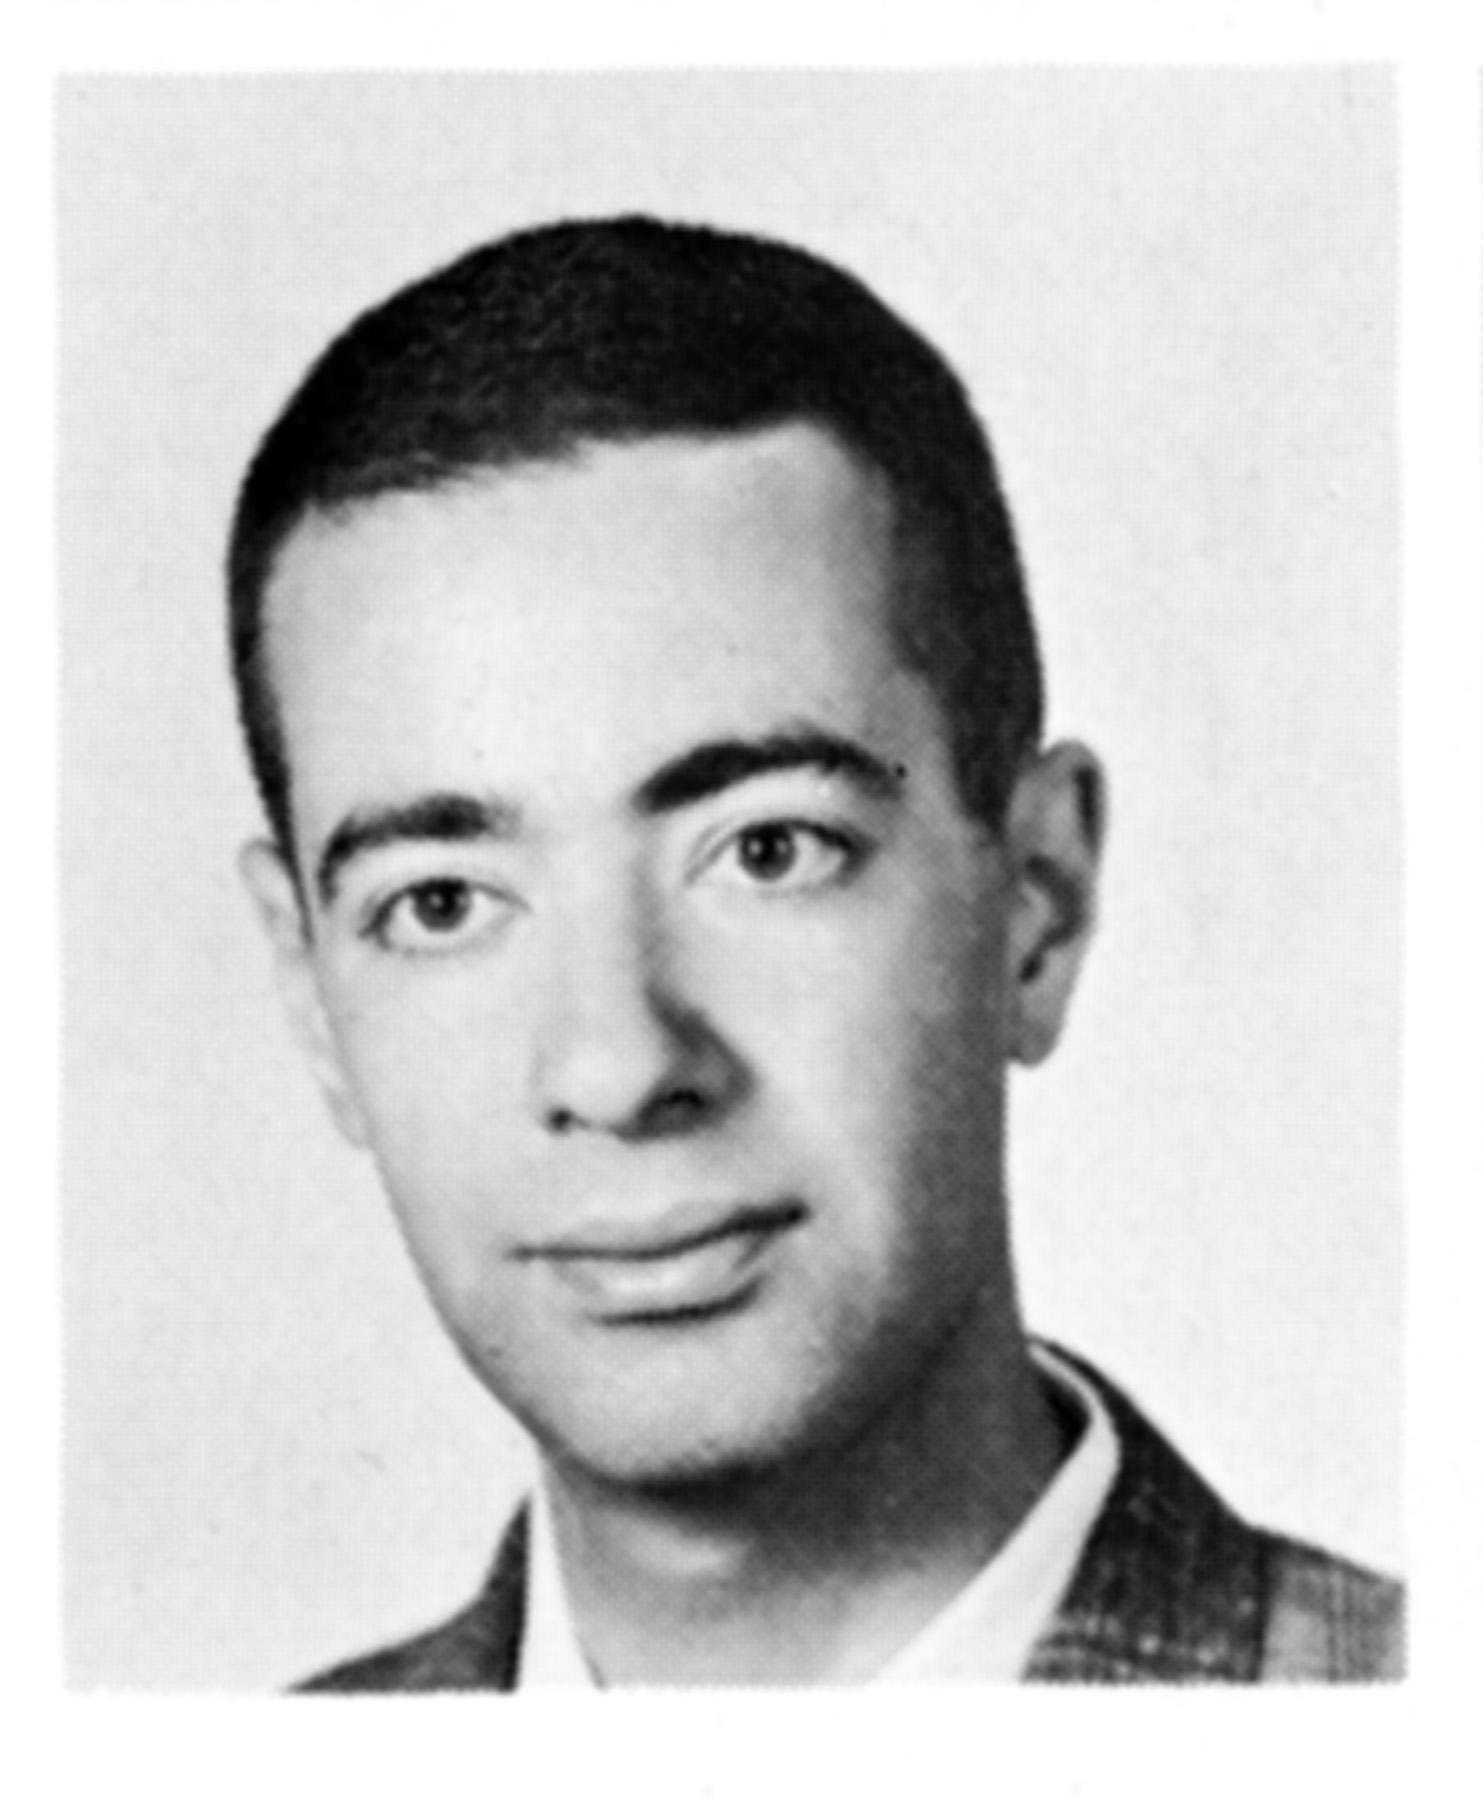 Elliot Rothenberg HLS yearbook headshot 1964